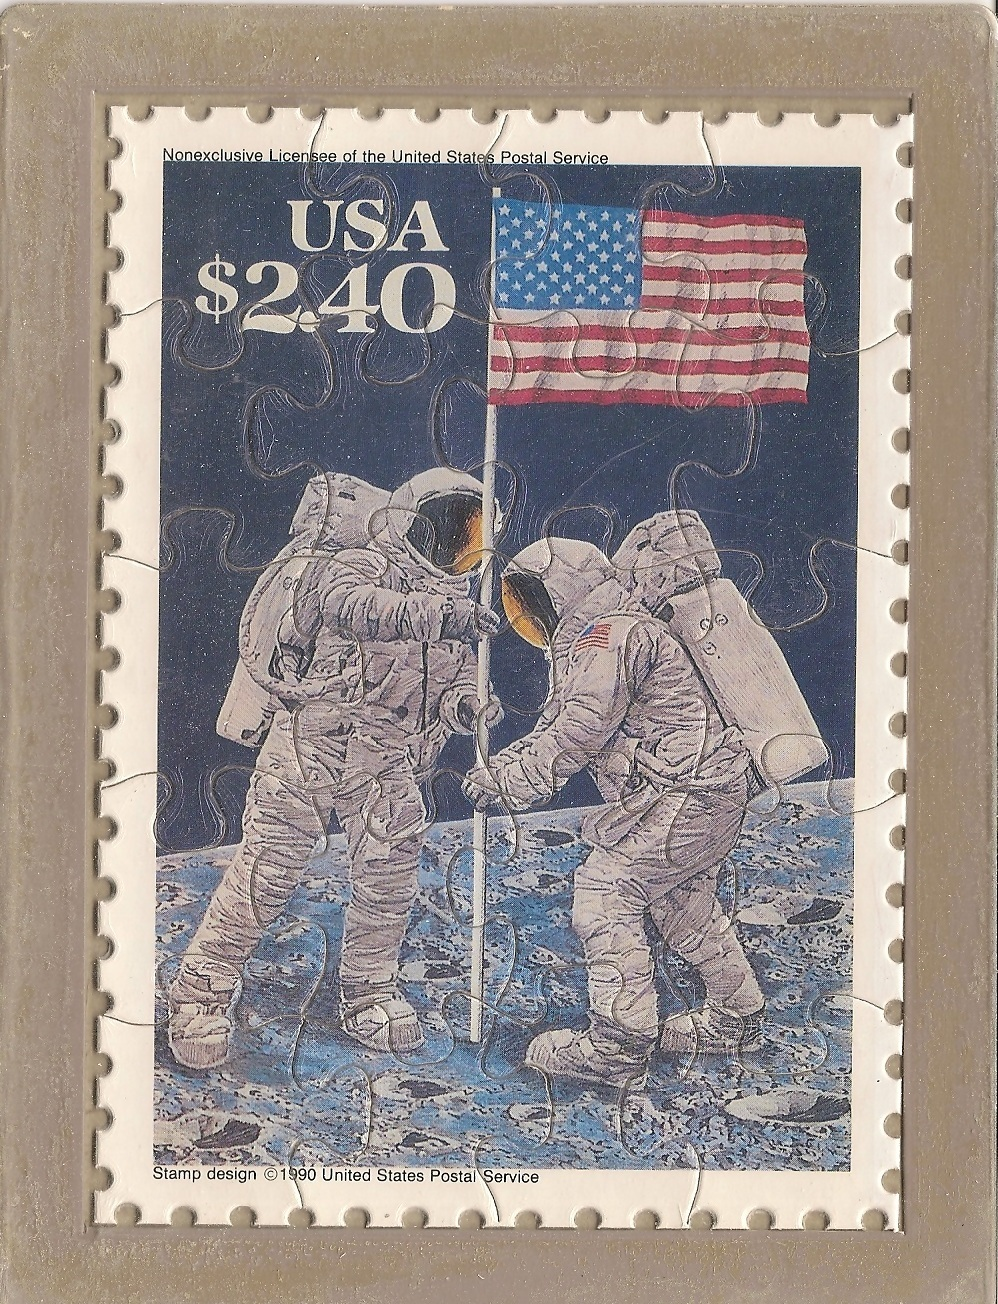 USPS POSTCARD - Commemorative Puzzle series - MOON LANDING - FREE SHIPPING